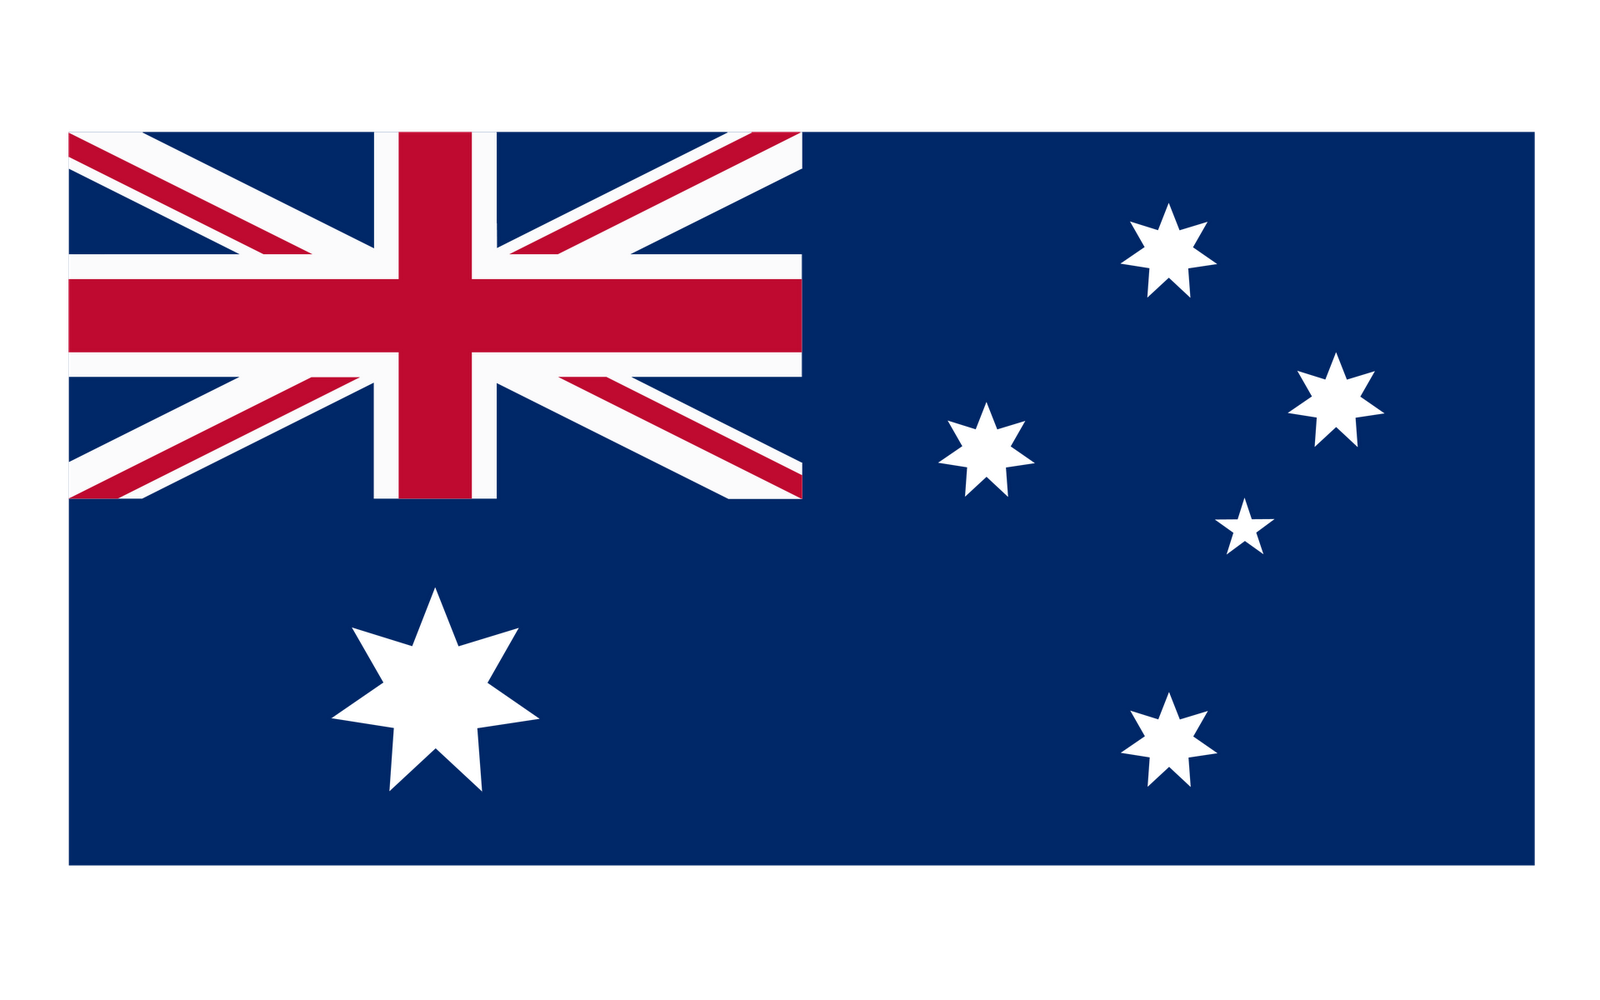 Hd Wallpaper Flag Australia World Flags